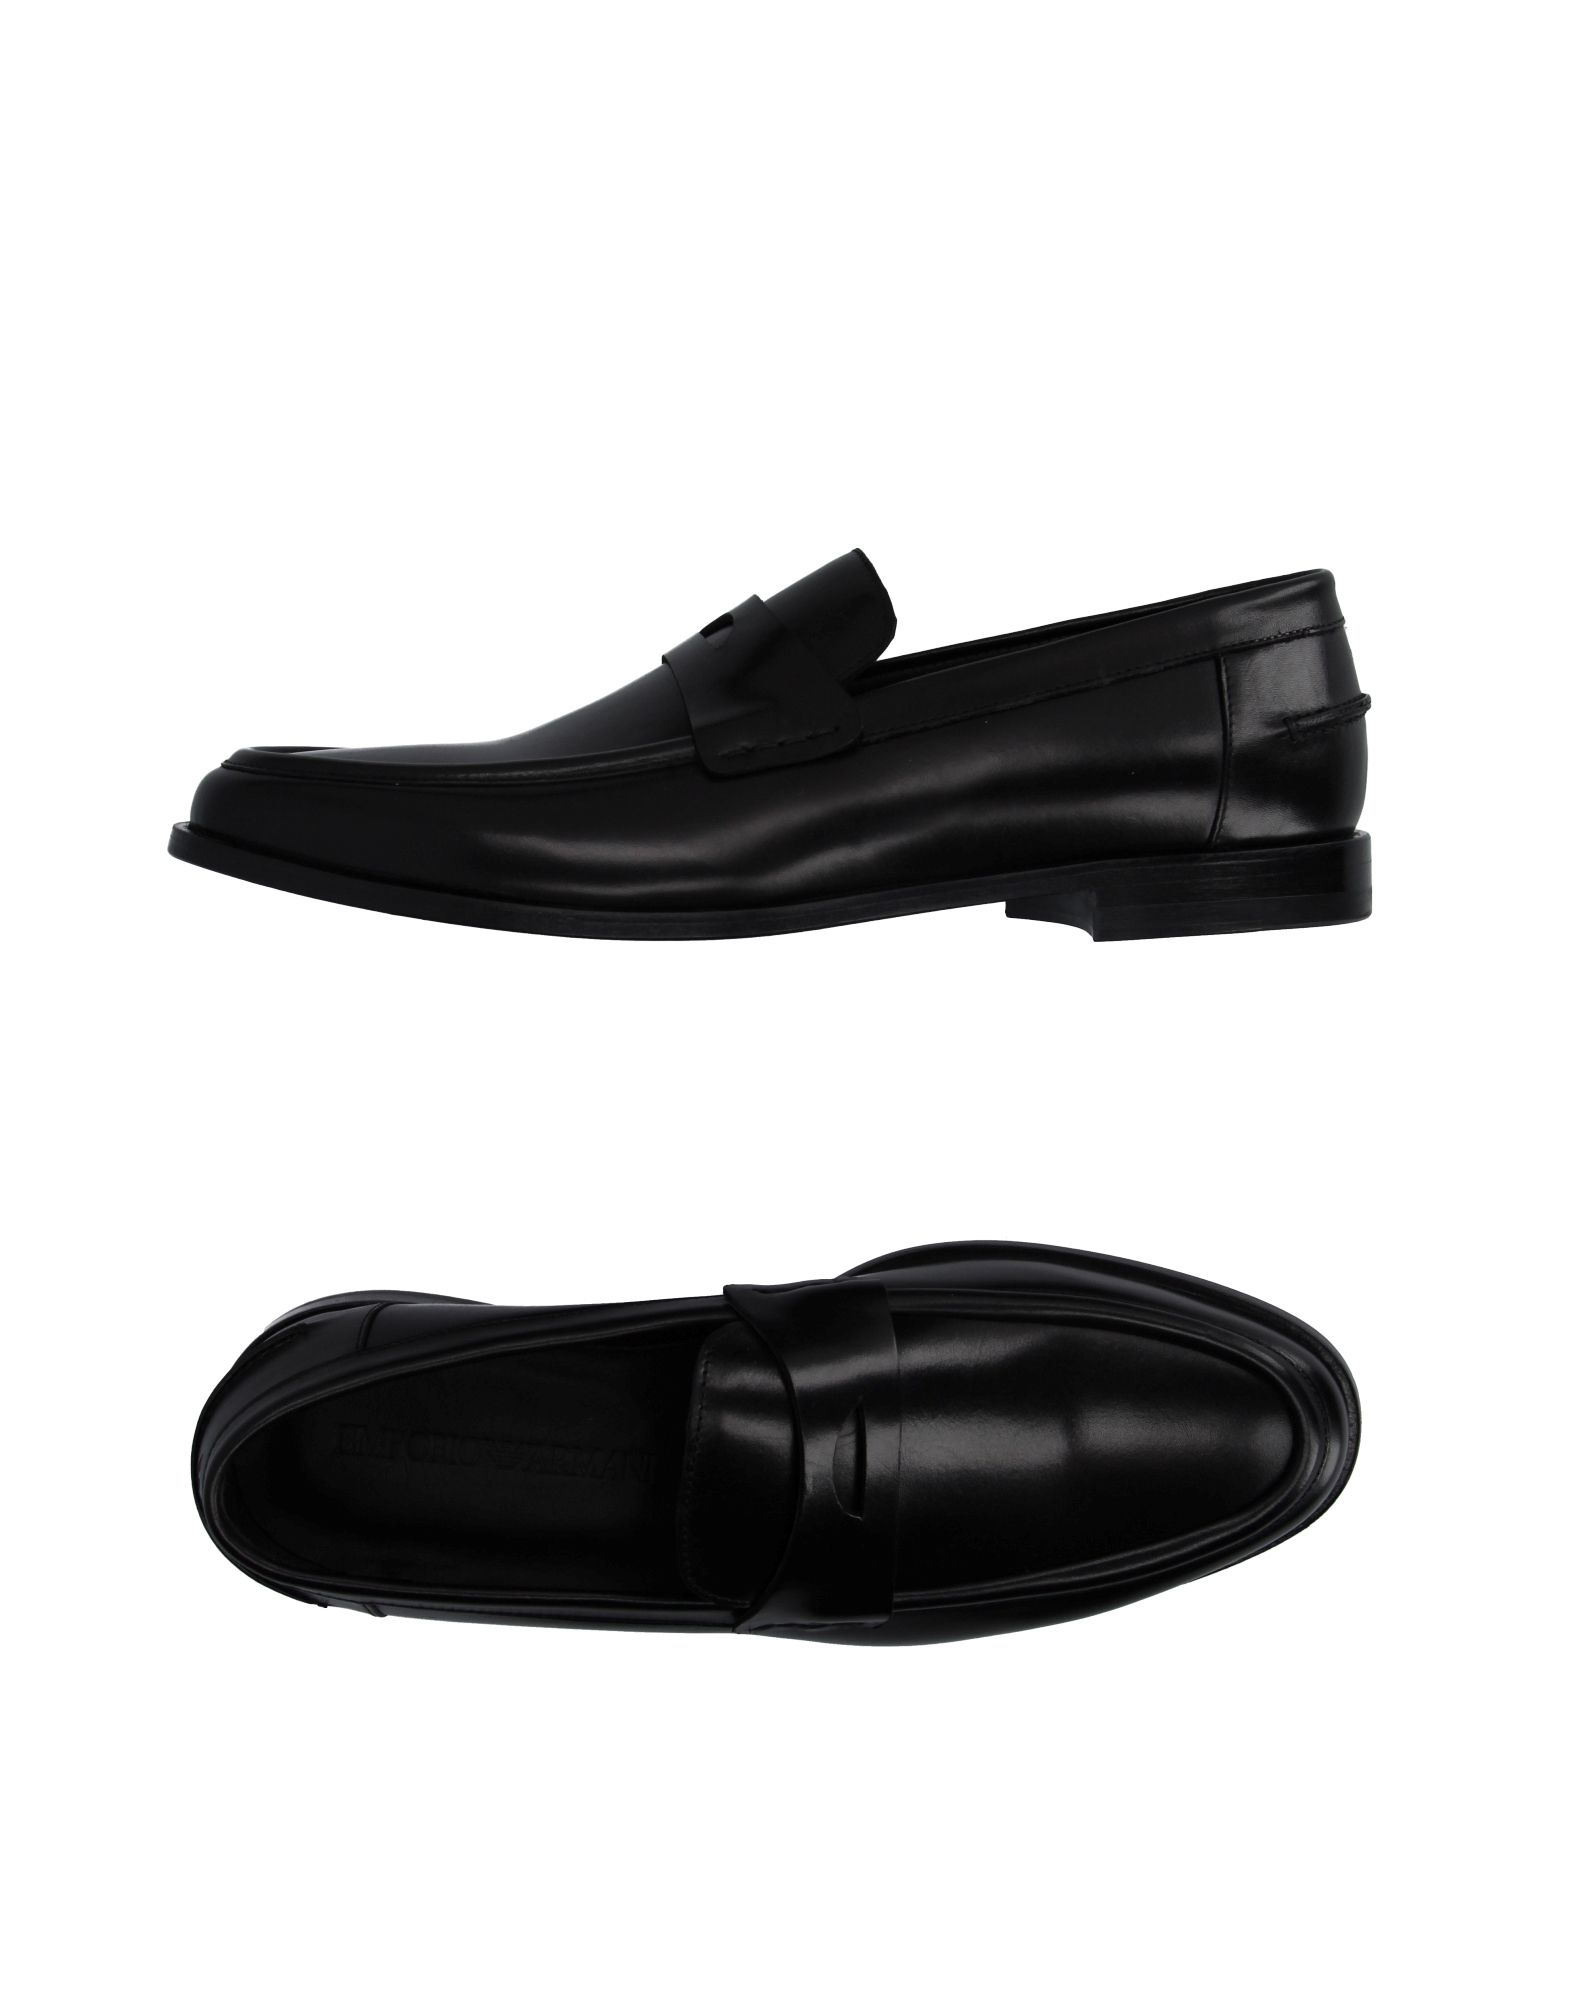 Cheap Driving Shoes Uk